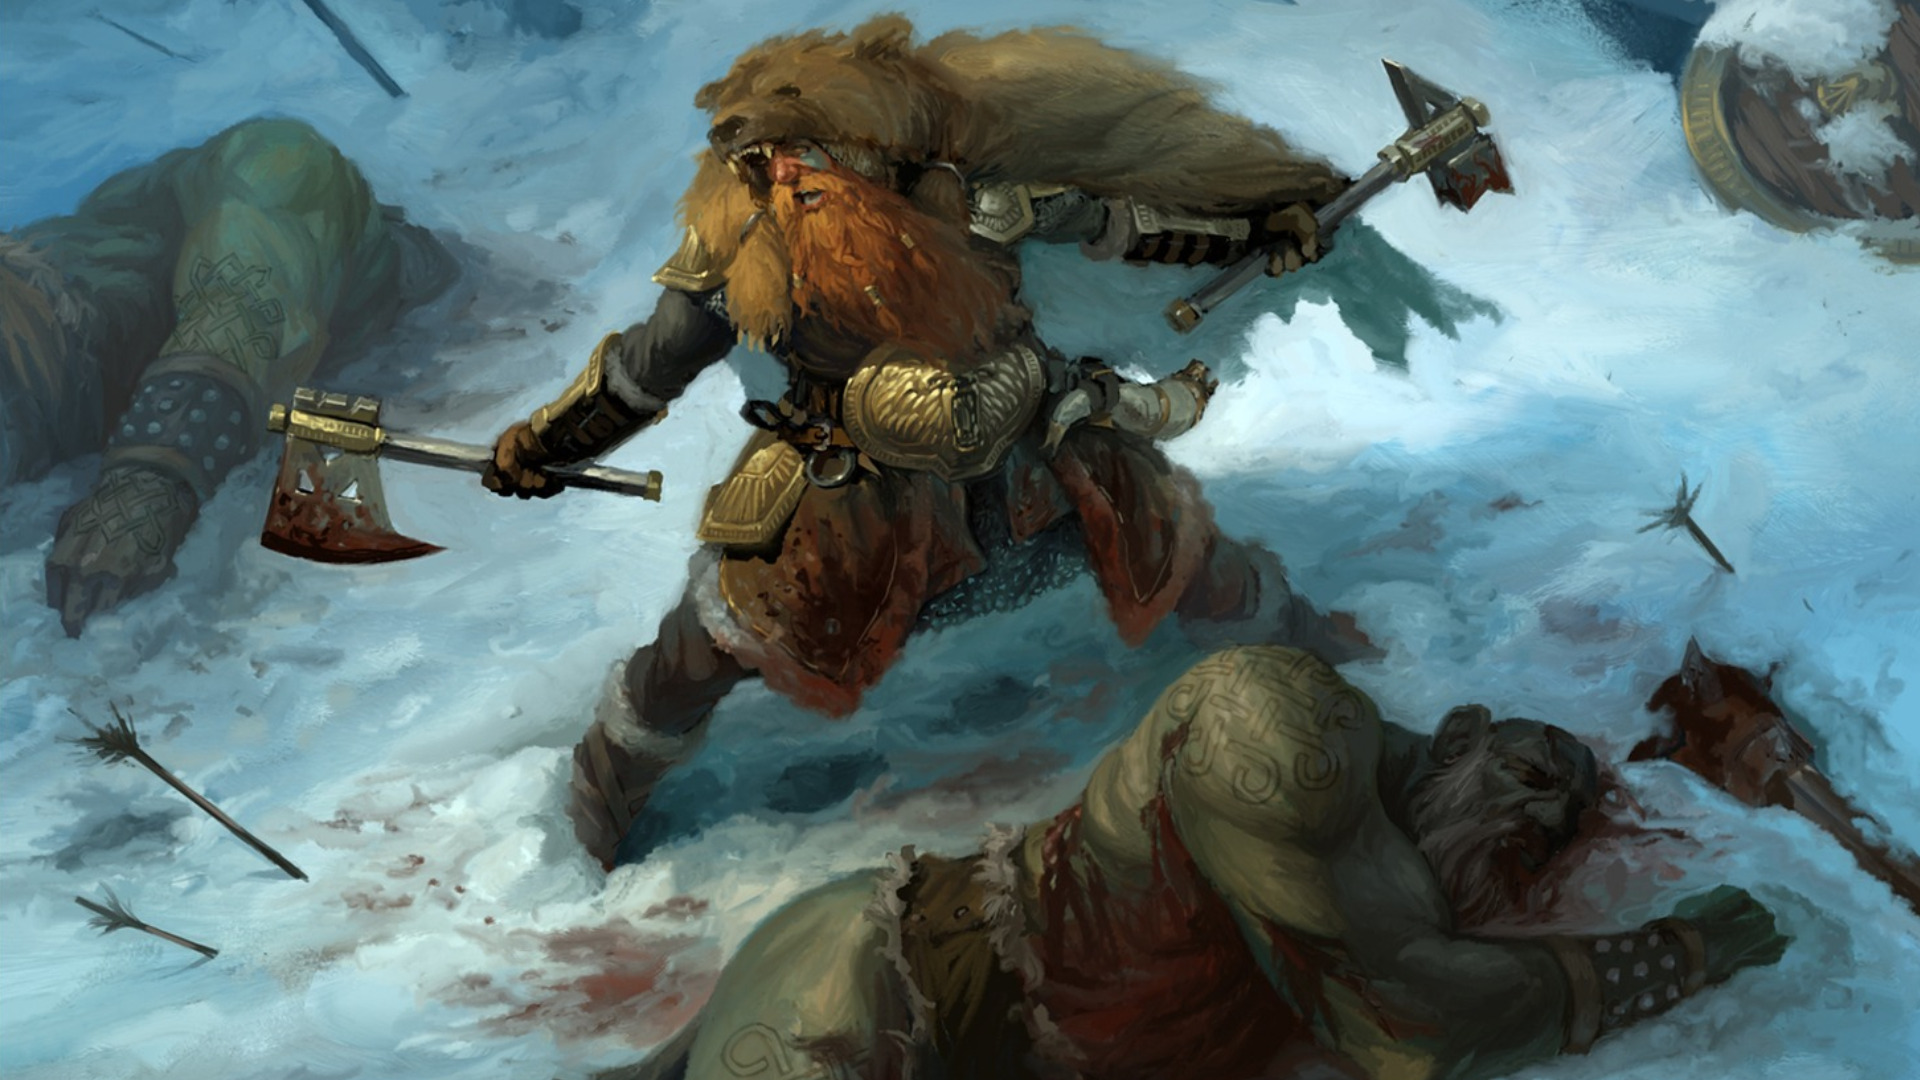 Dwarf High Quality Background on Wallpapers Vista